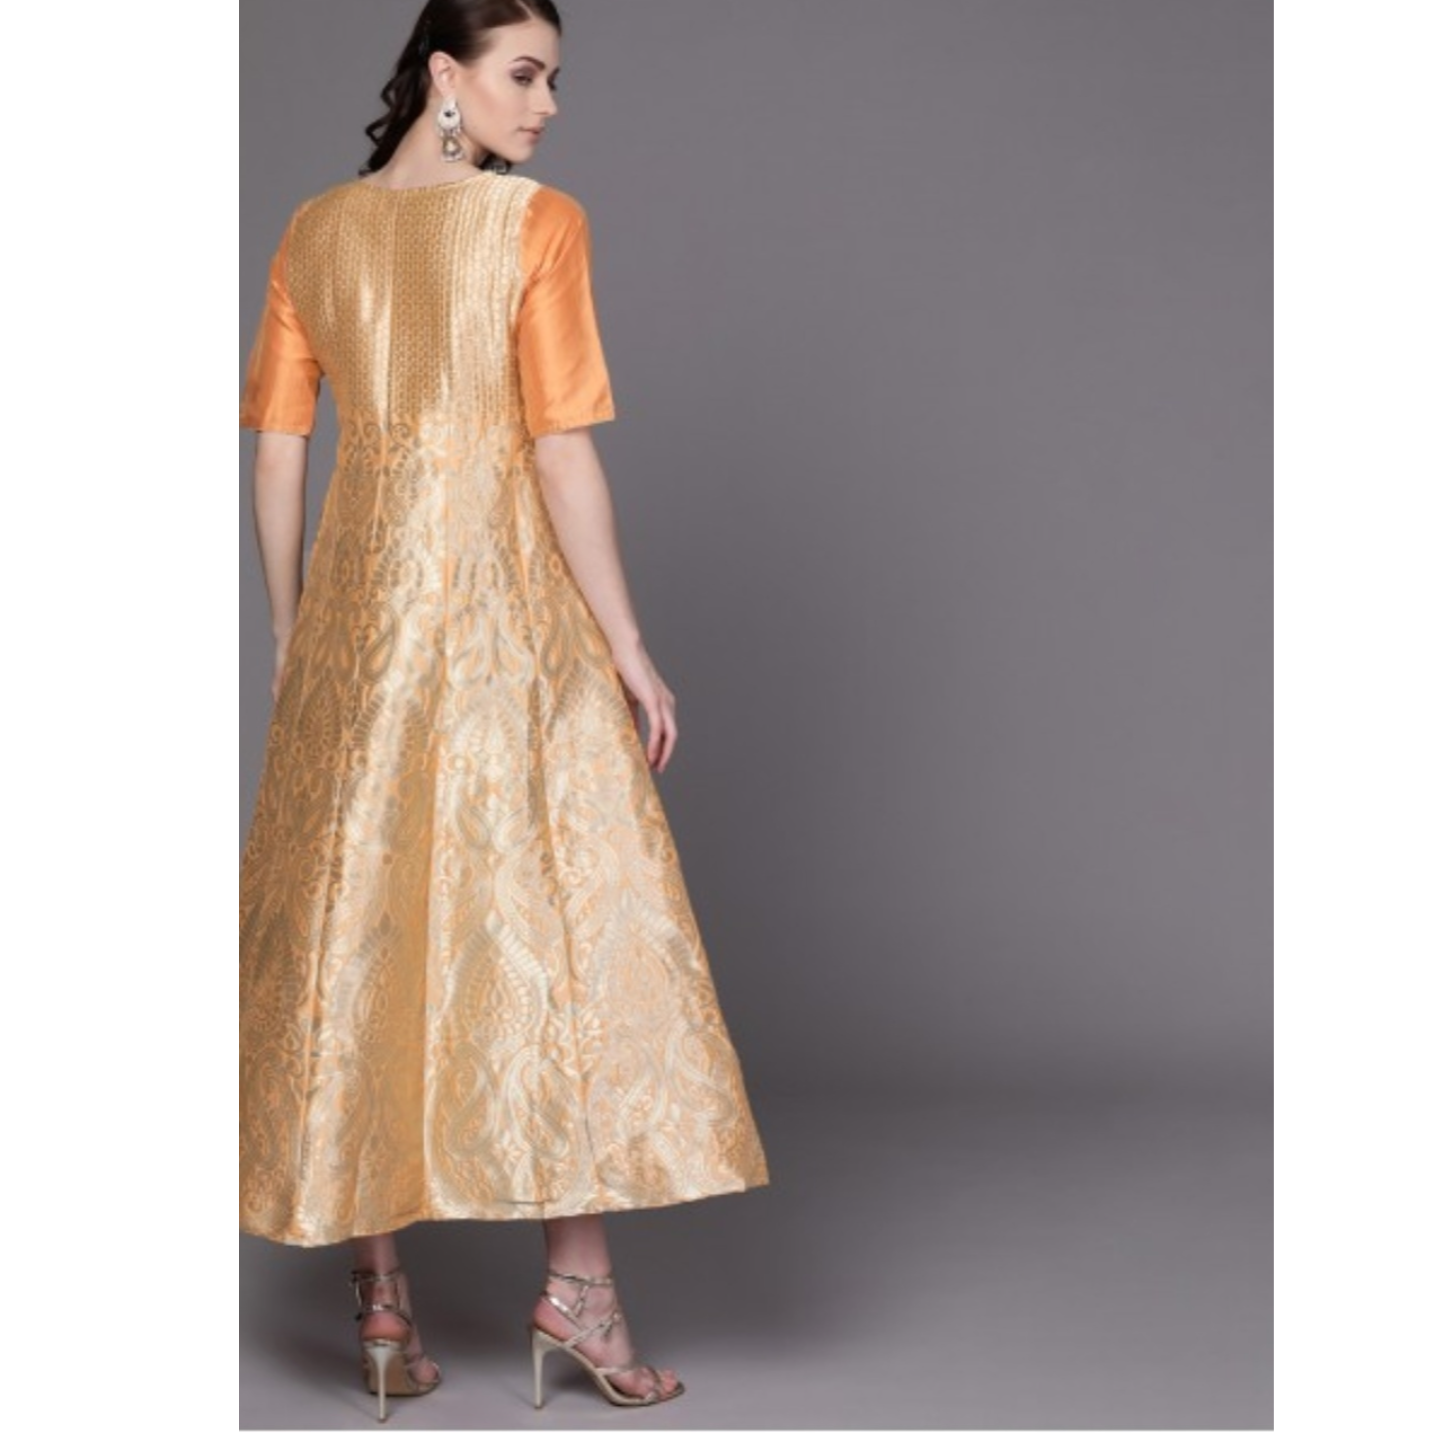 Orange & Golden Woven Design Maxi Dress